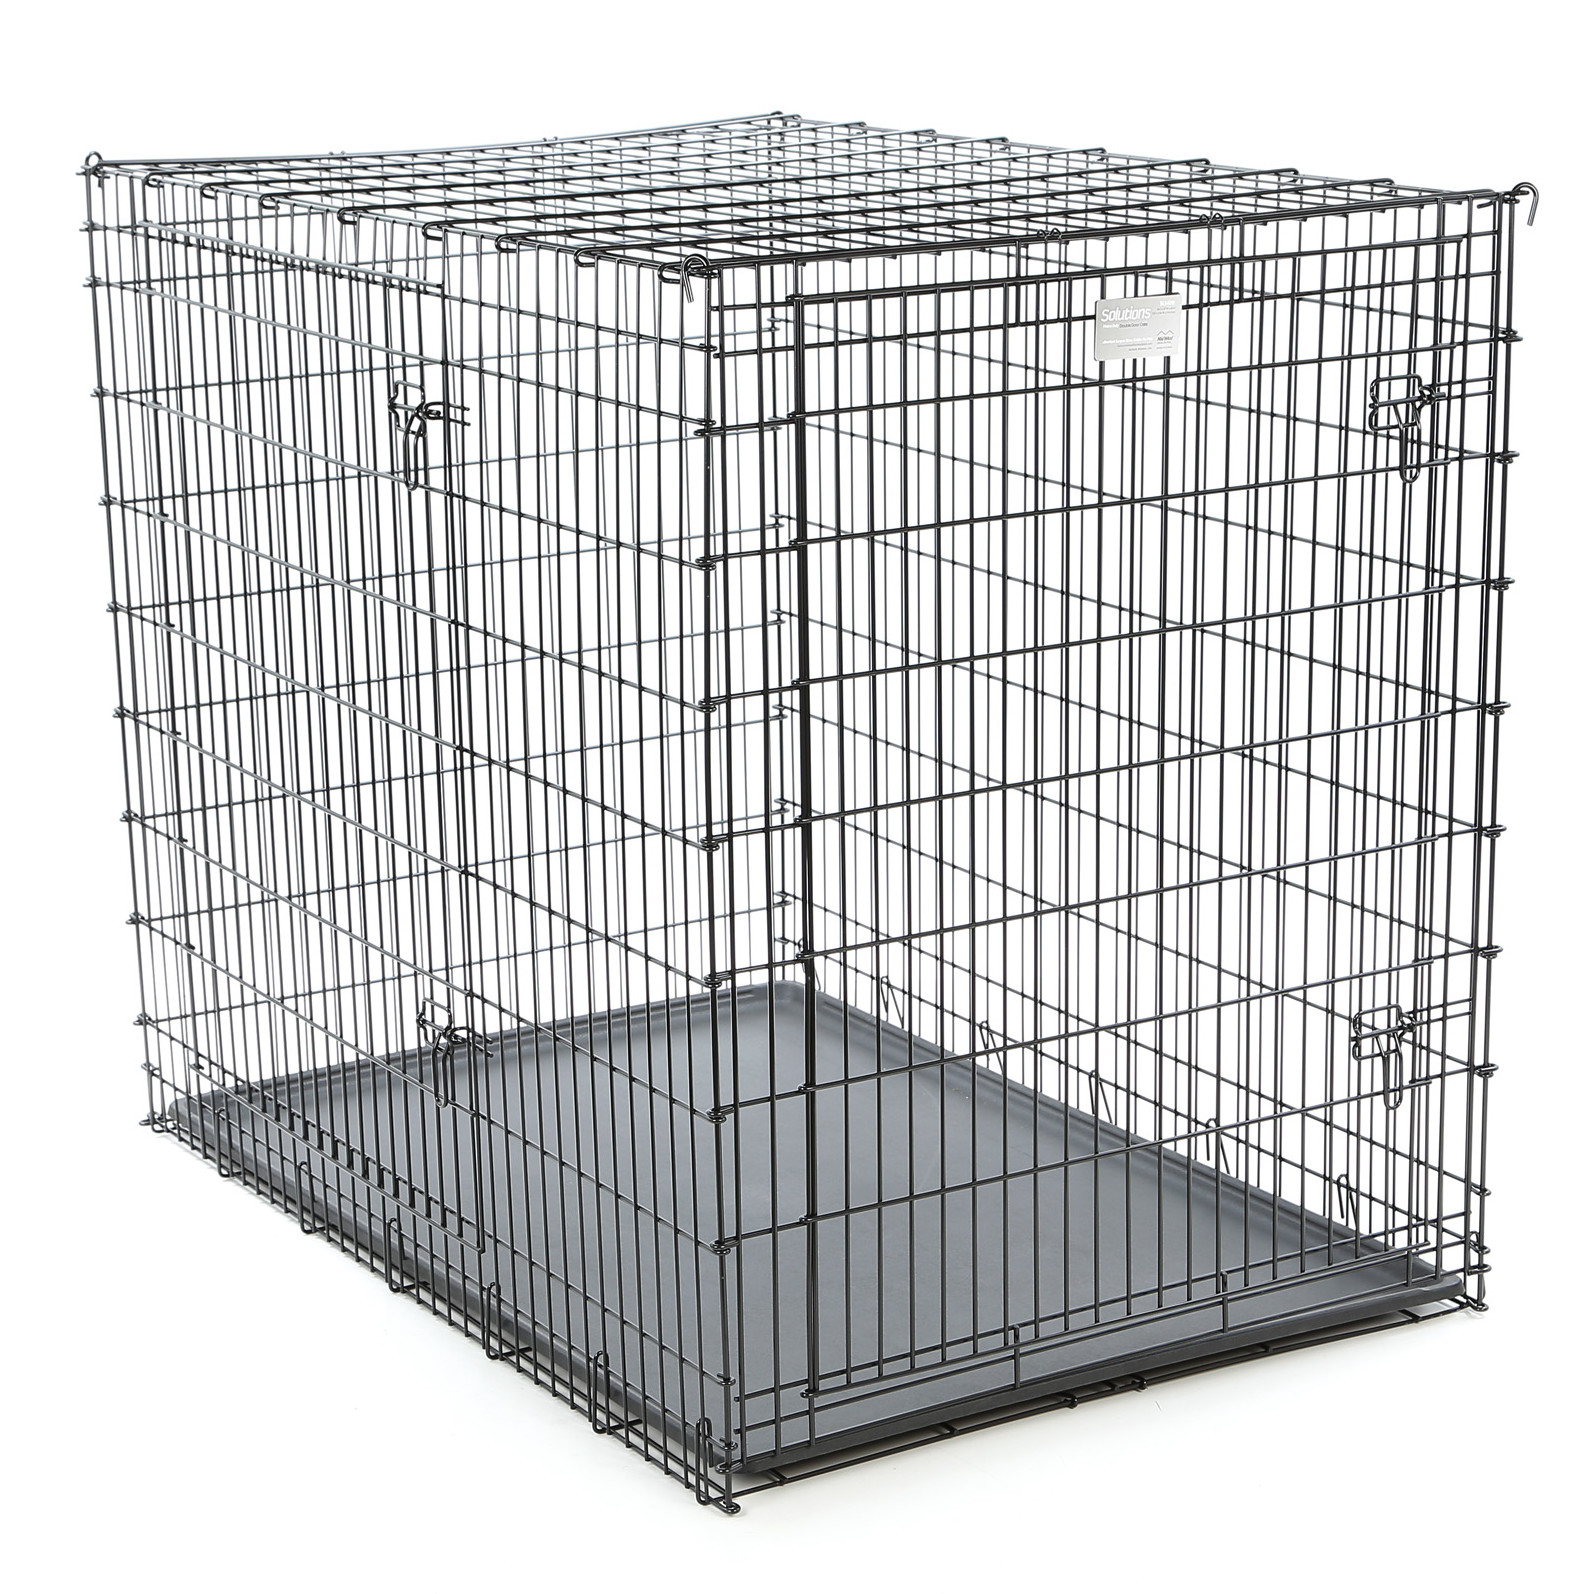 Midwest Dog Crates | Midwesthomes4pets | Midwest Dog Crate Cover